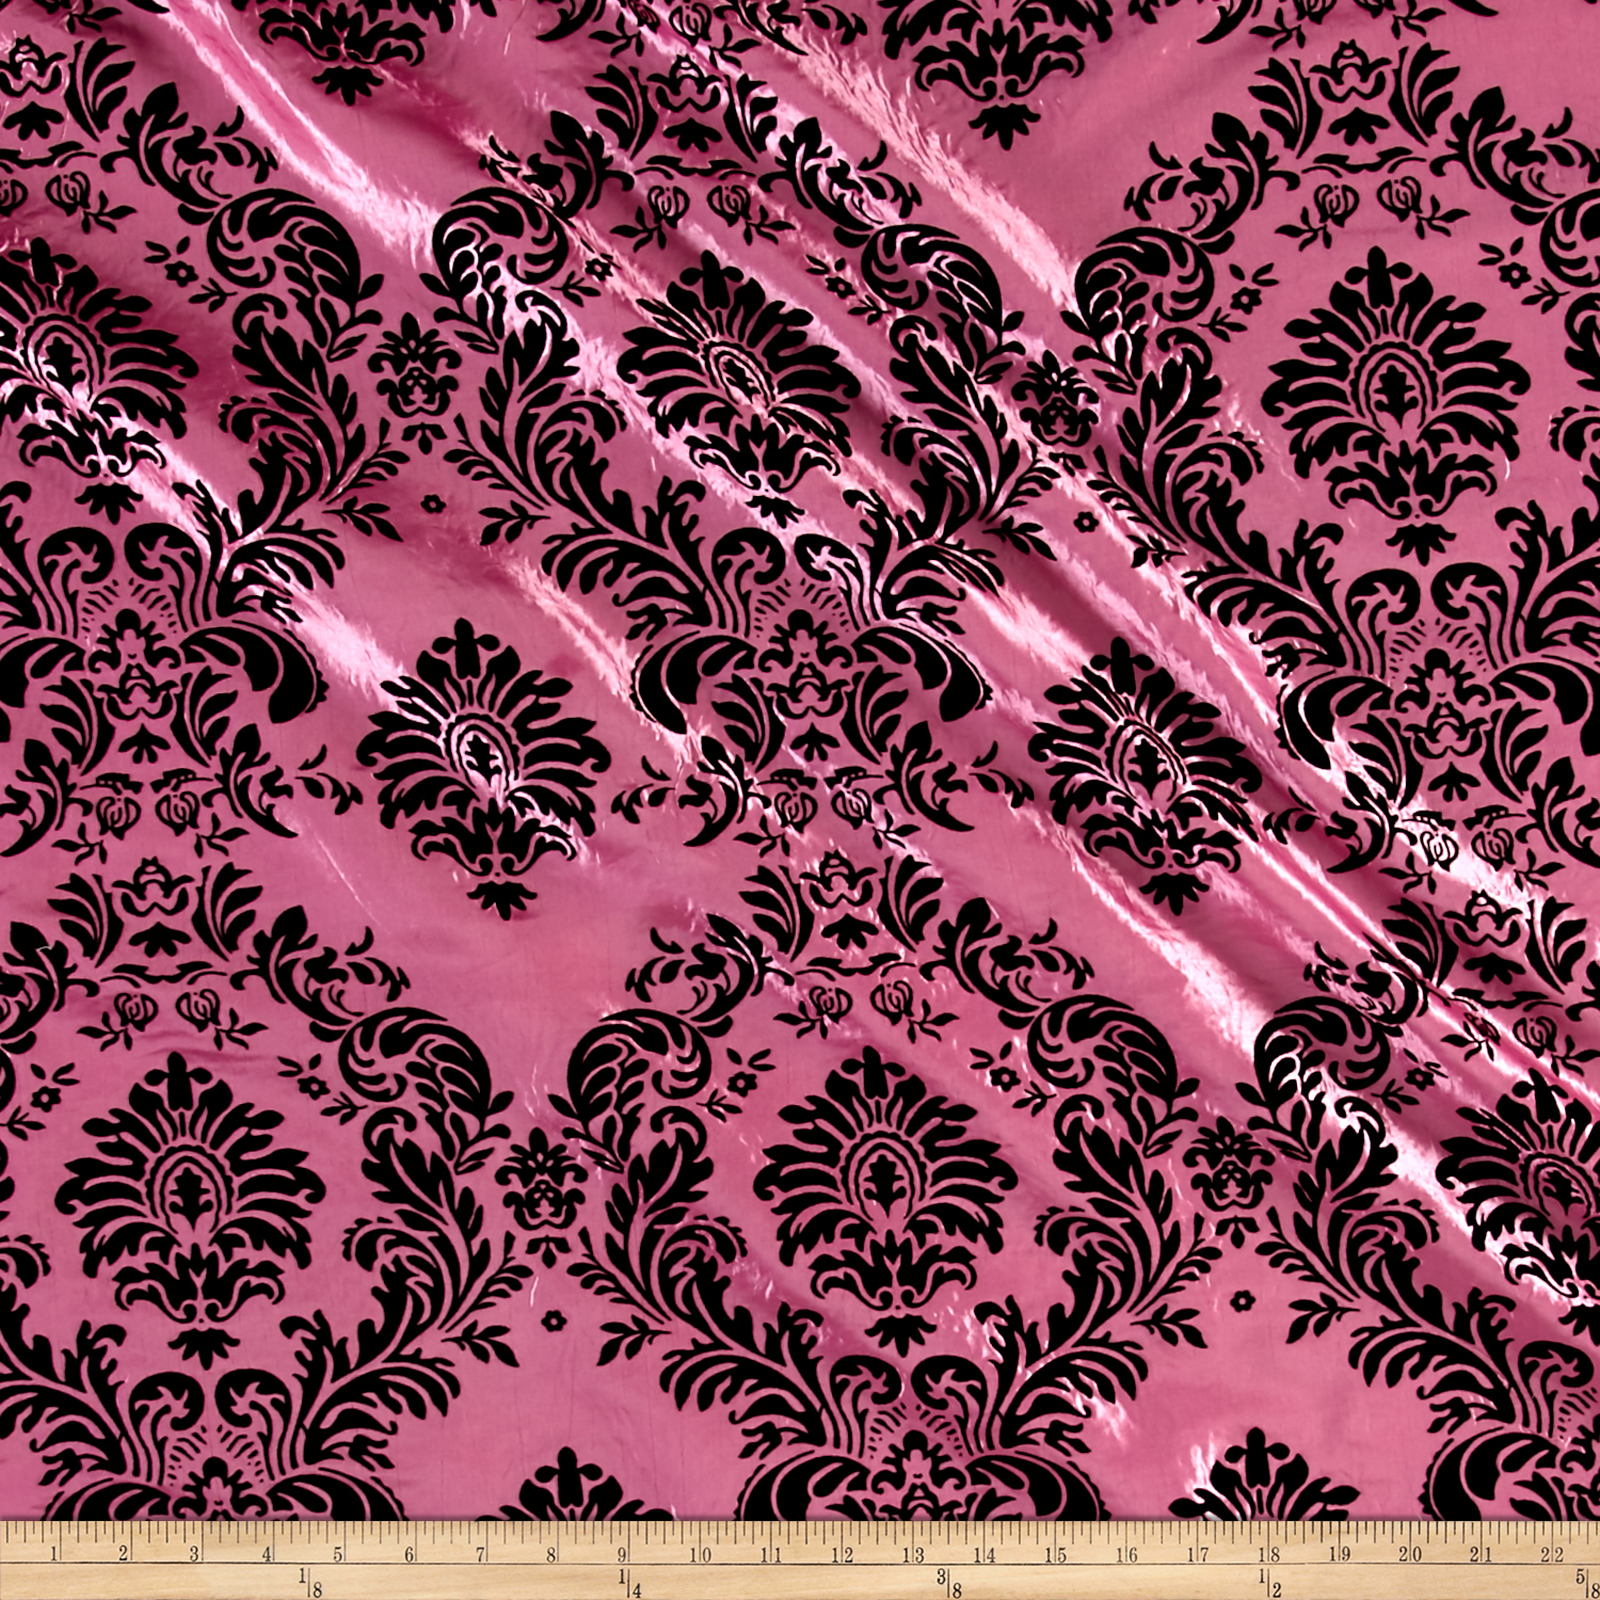 Flocked Damask Taffetta Candy Pink/Black Fabric by Ben in USA